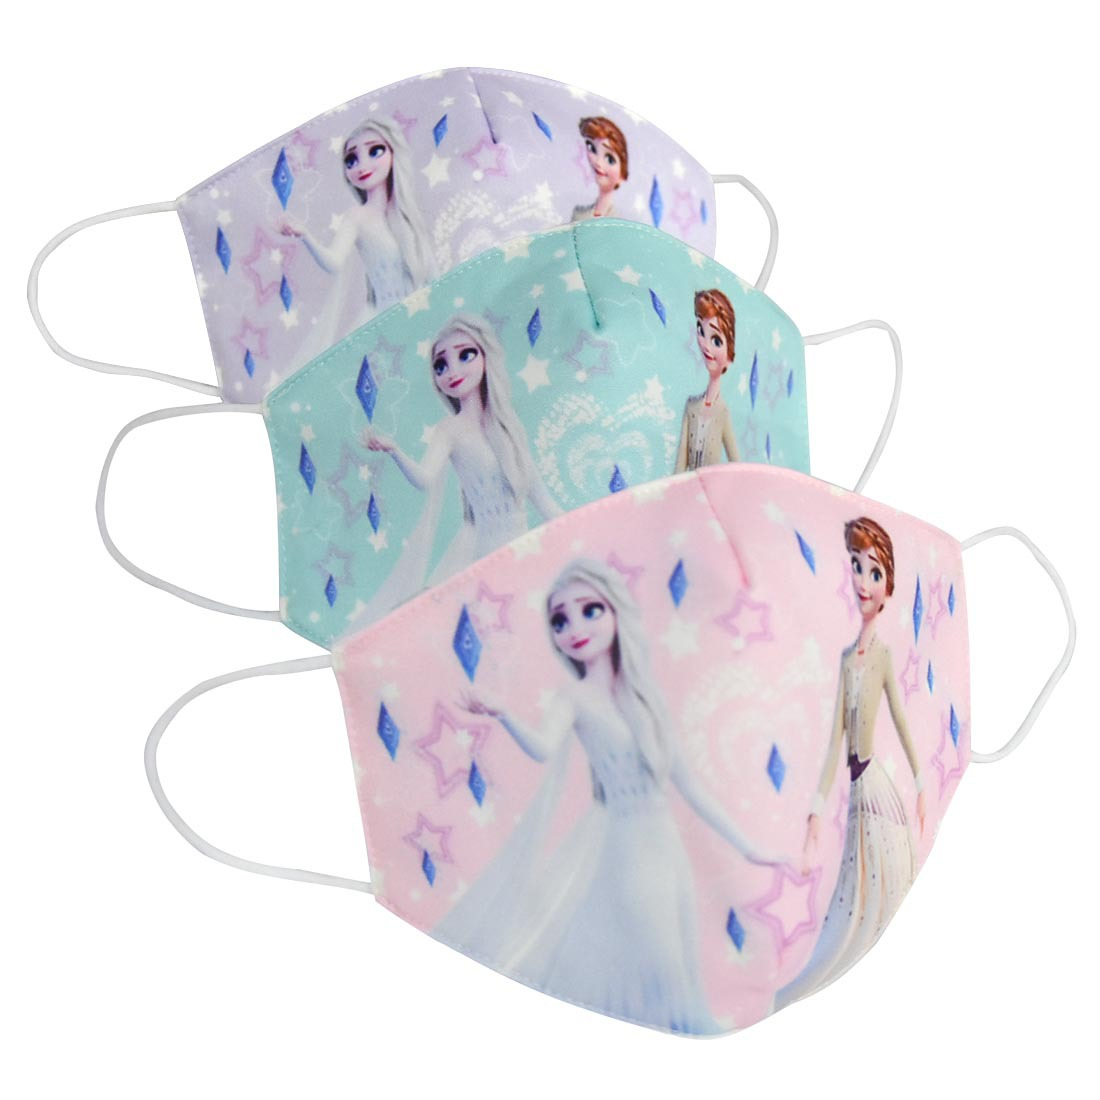 2020 Unisex Fashion Anime Mask Adults Kids Anti Dust Cotton Face Mask Health Washable Reusable Personal Protection Mouth Muffle 1